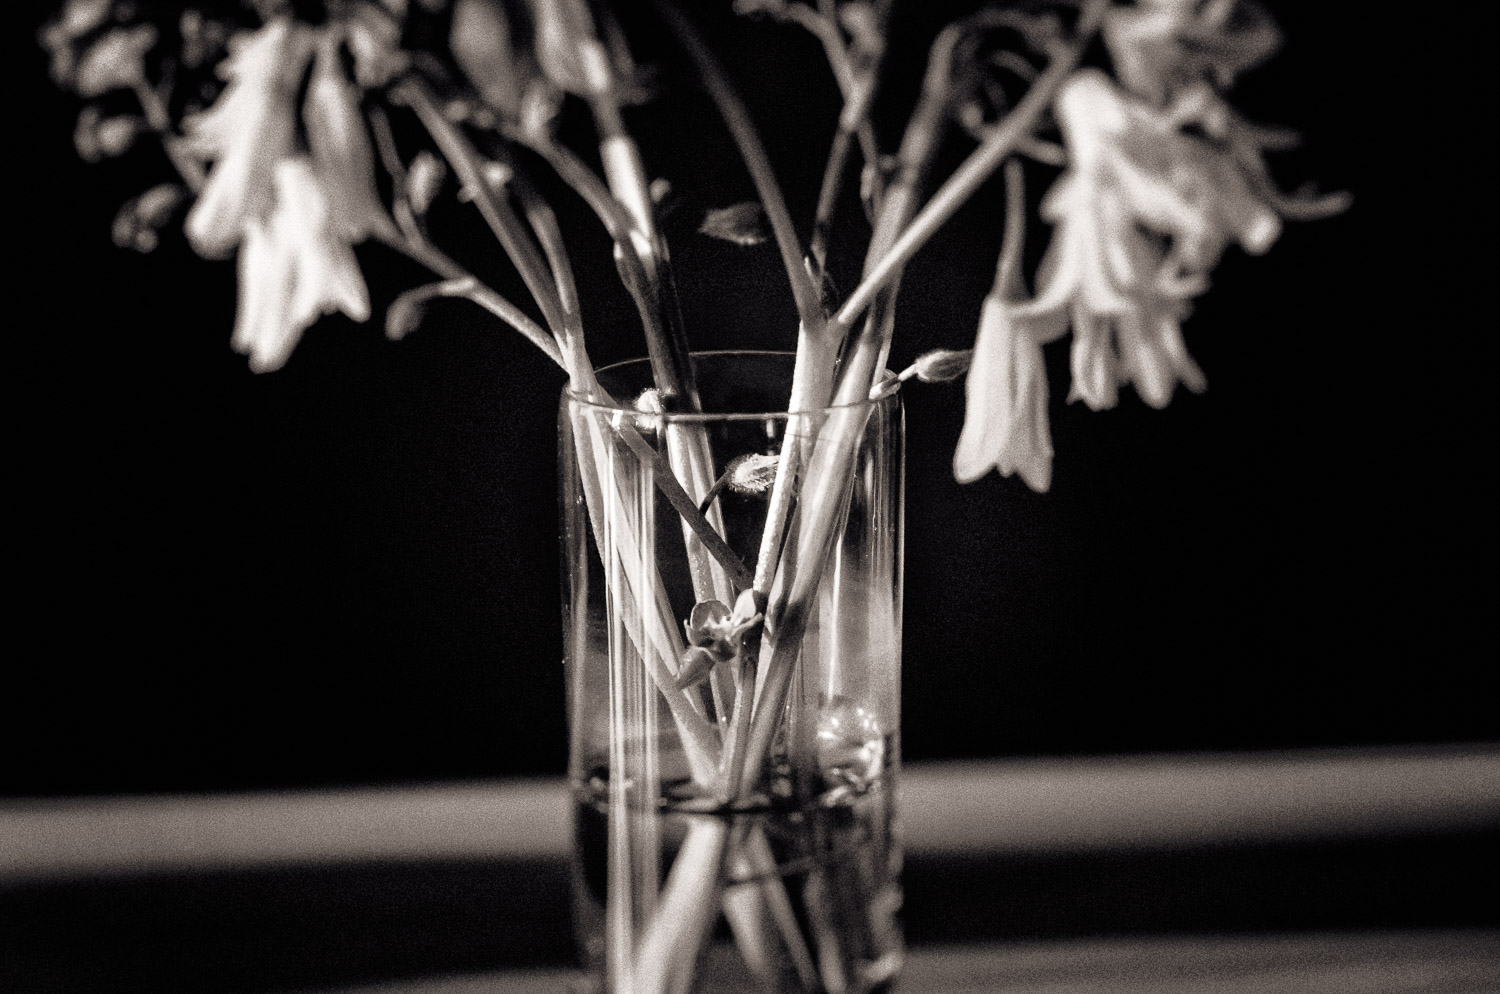 Wildflowers in a Glass | Mark Lindsay